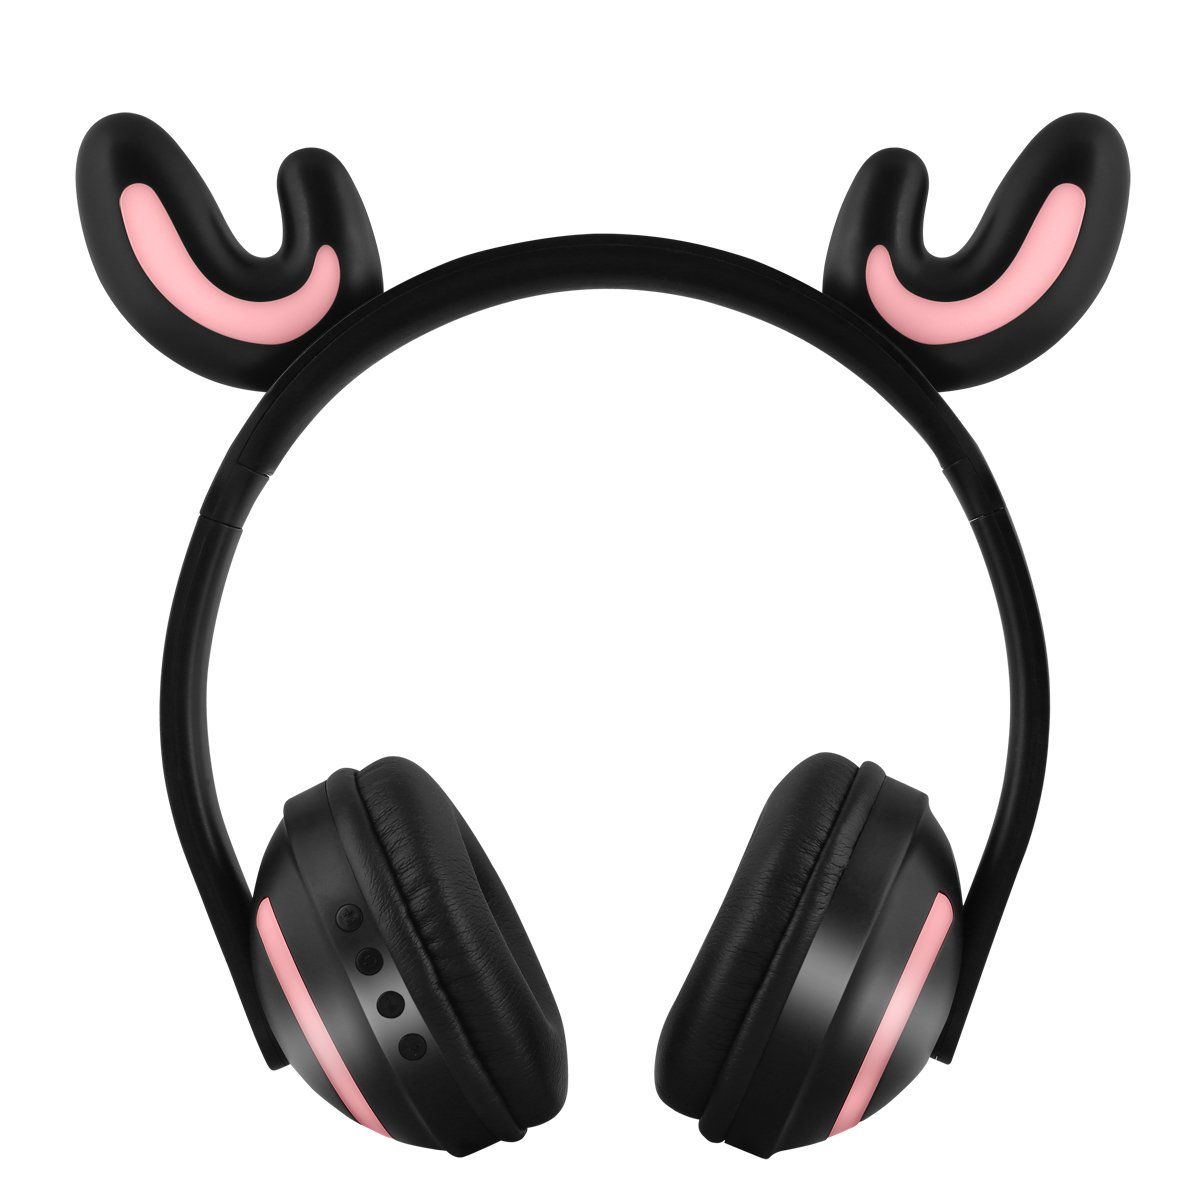 JFtown Wireless Bluetooth LED Headphones 7 Colors Lights Deer Horn Animal Cosplay Over Ear Stereo Bluetooth Headset with Microphone for Kids Girl Boy Compatible with PC/iPhone/iPad